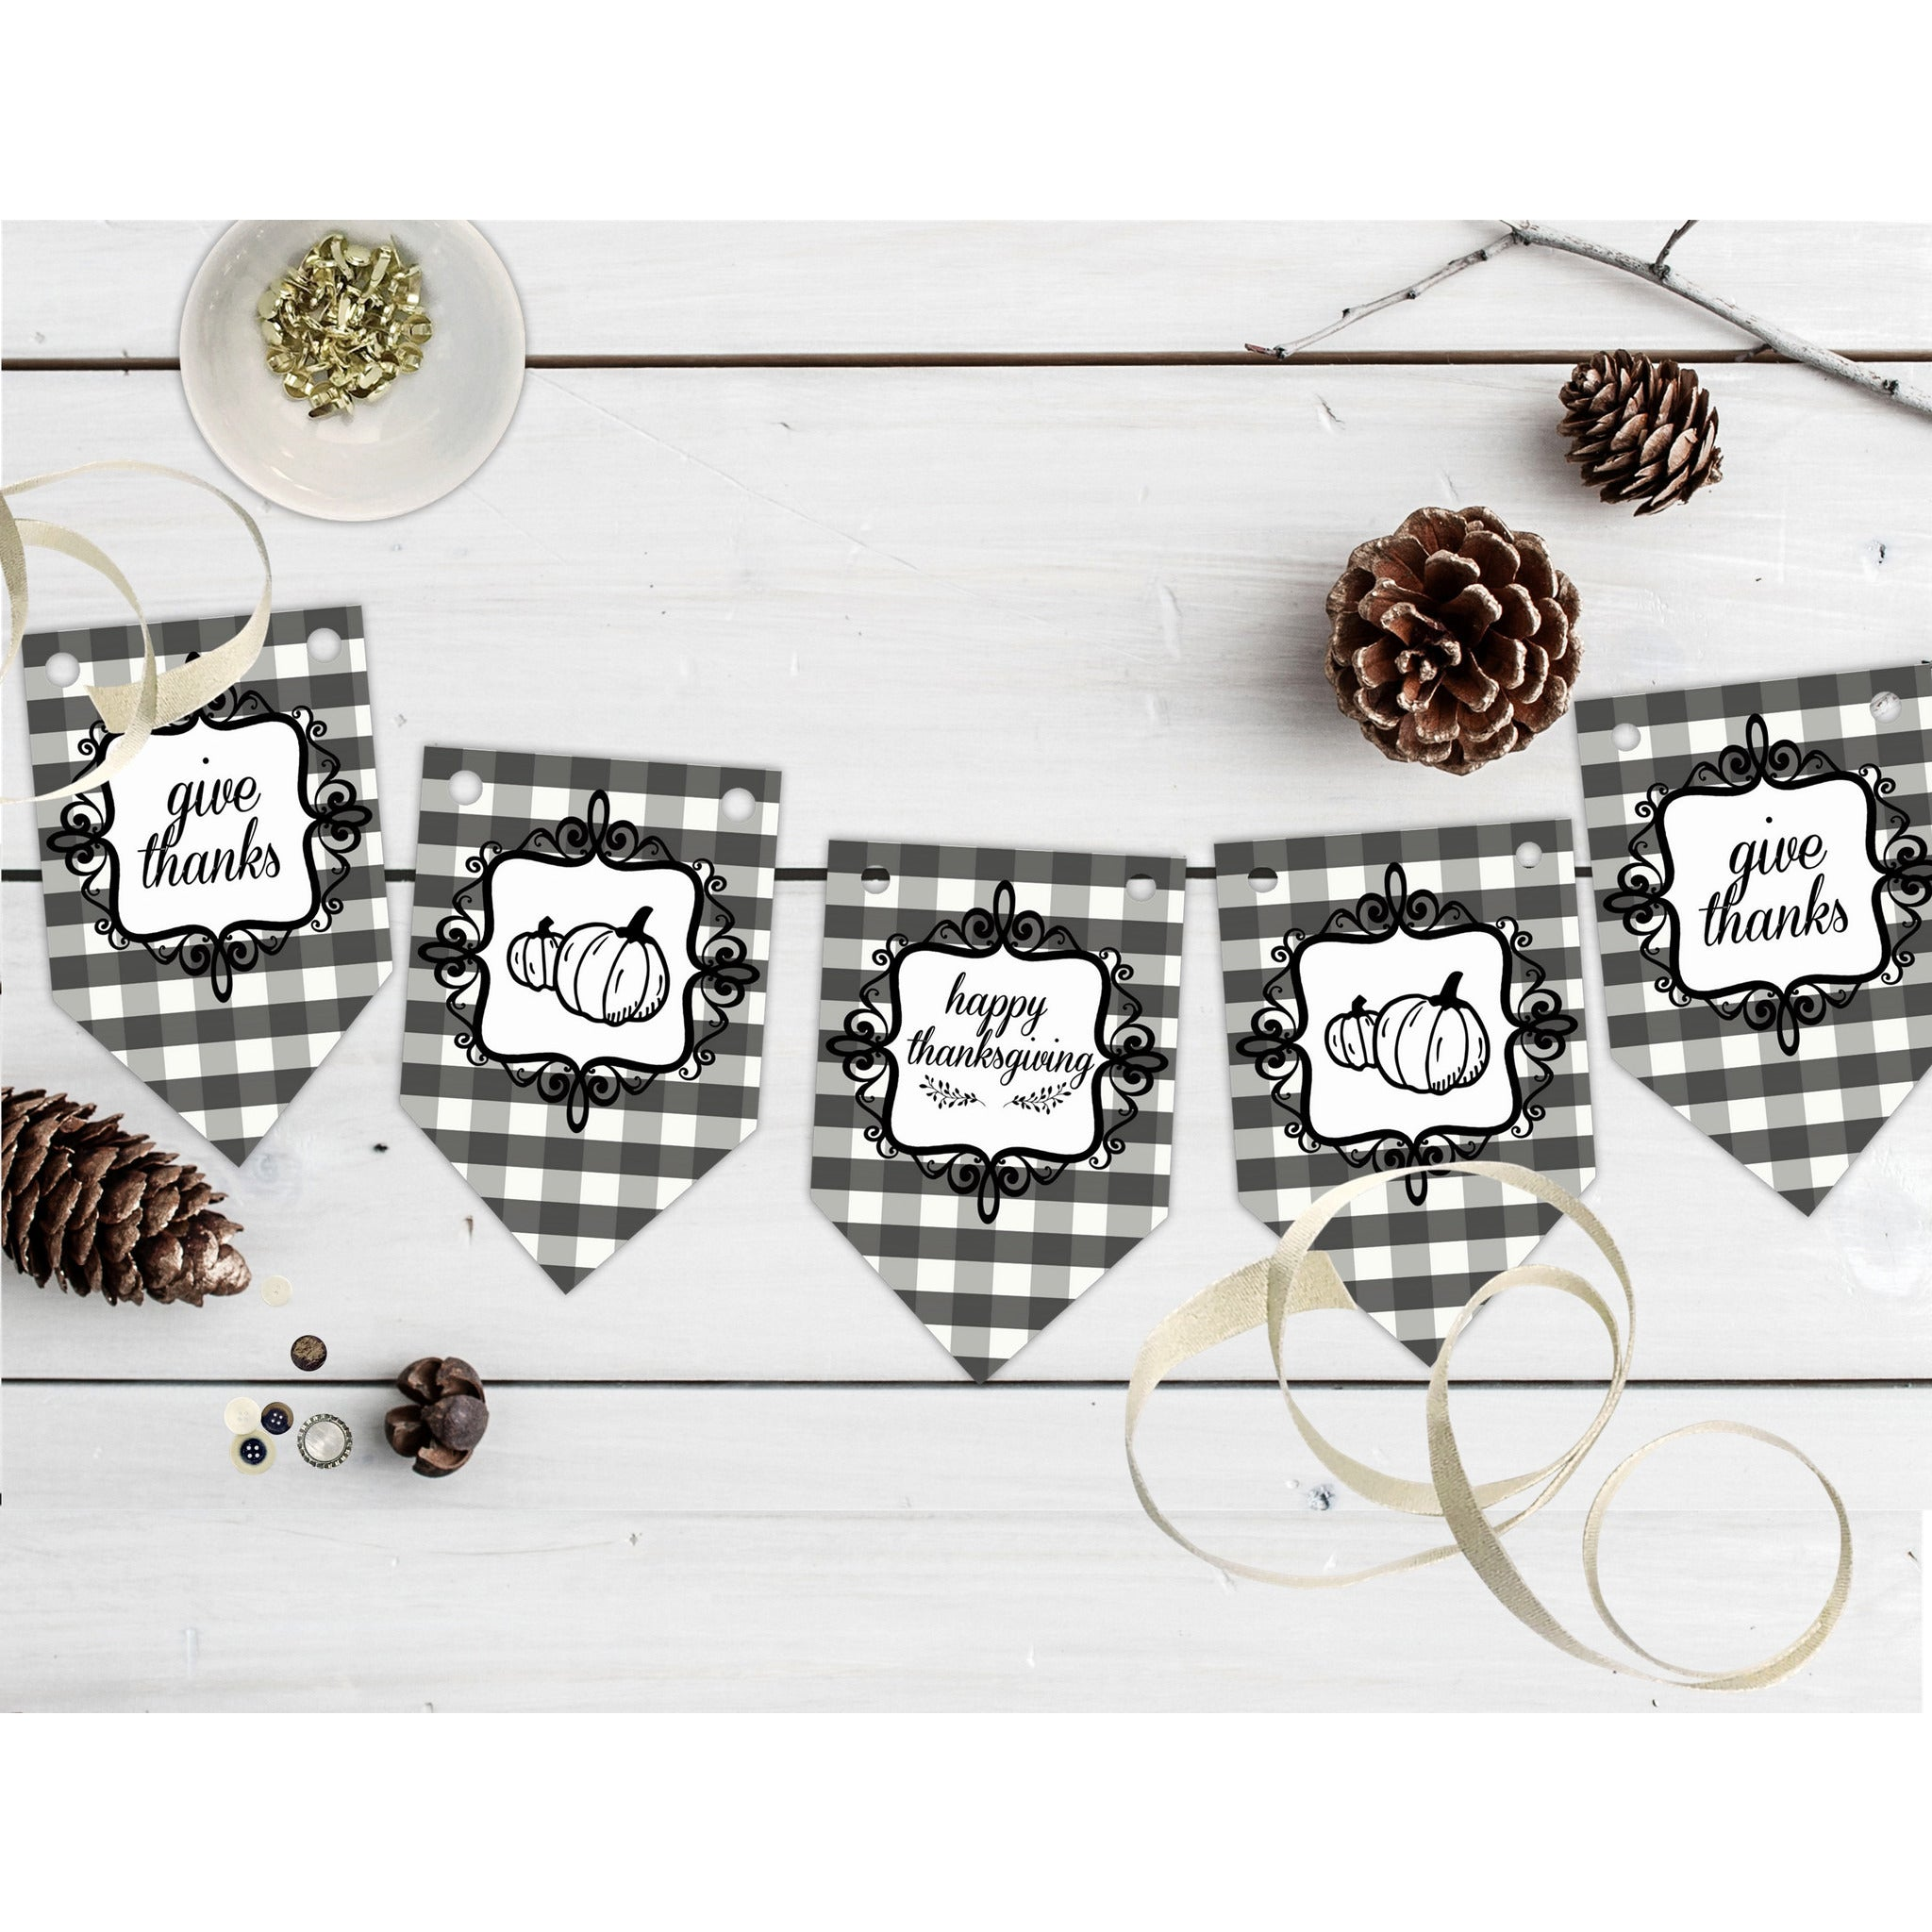 picture about Thanksgiving Printable Decorations referred to as Printable Deliver Due Range Decor, Printable Buffalo Plaid Thanksgiving Decorations, Foodstuff Tent Playing cards, Wall Decor